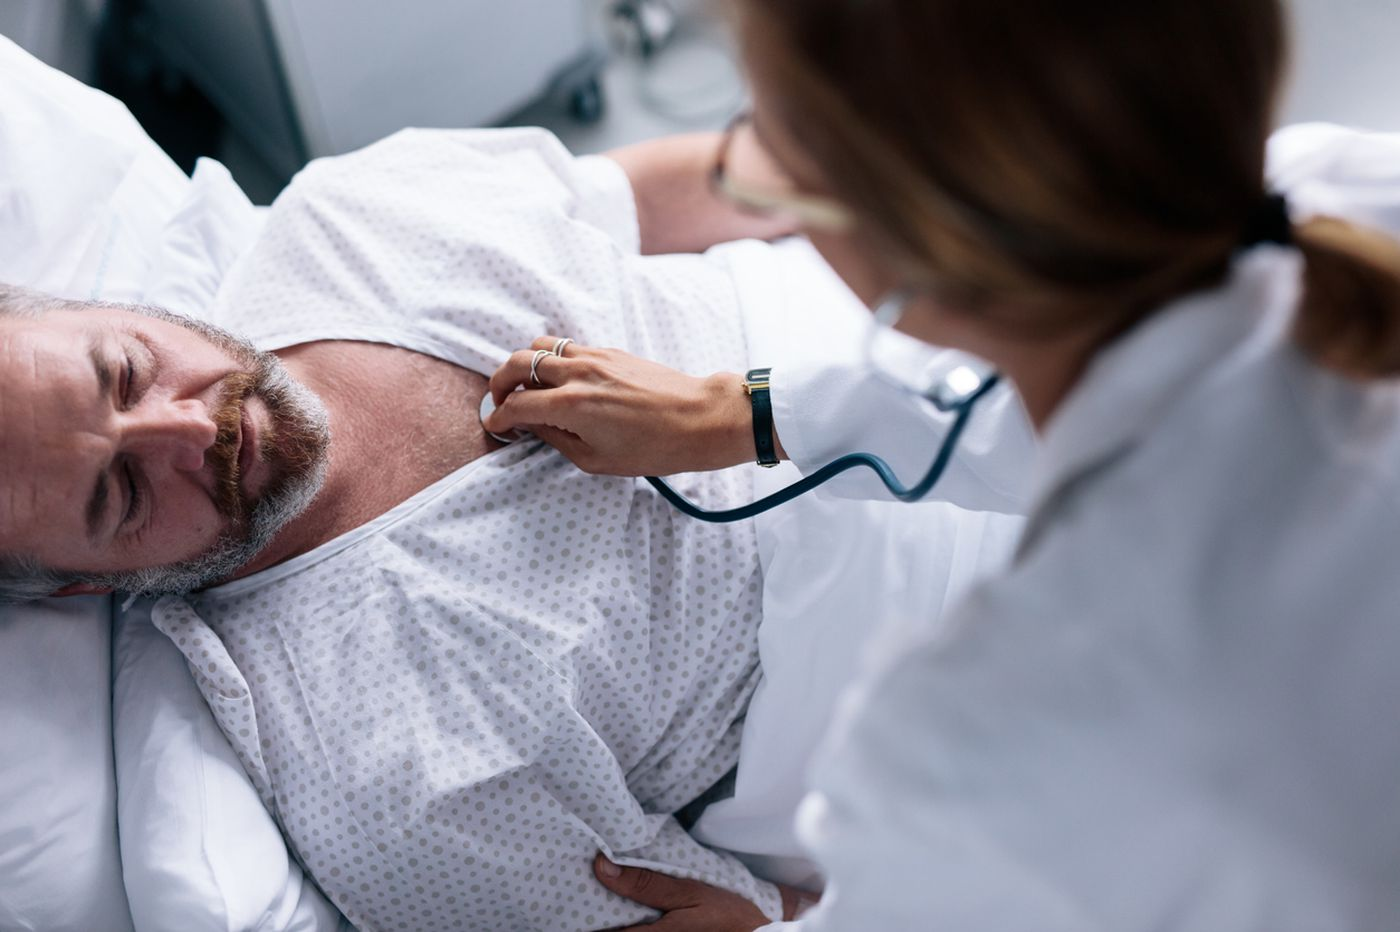 Medical Mystery: After he fainted, man's diagnosis unraveled a frightening family history